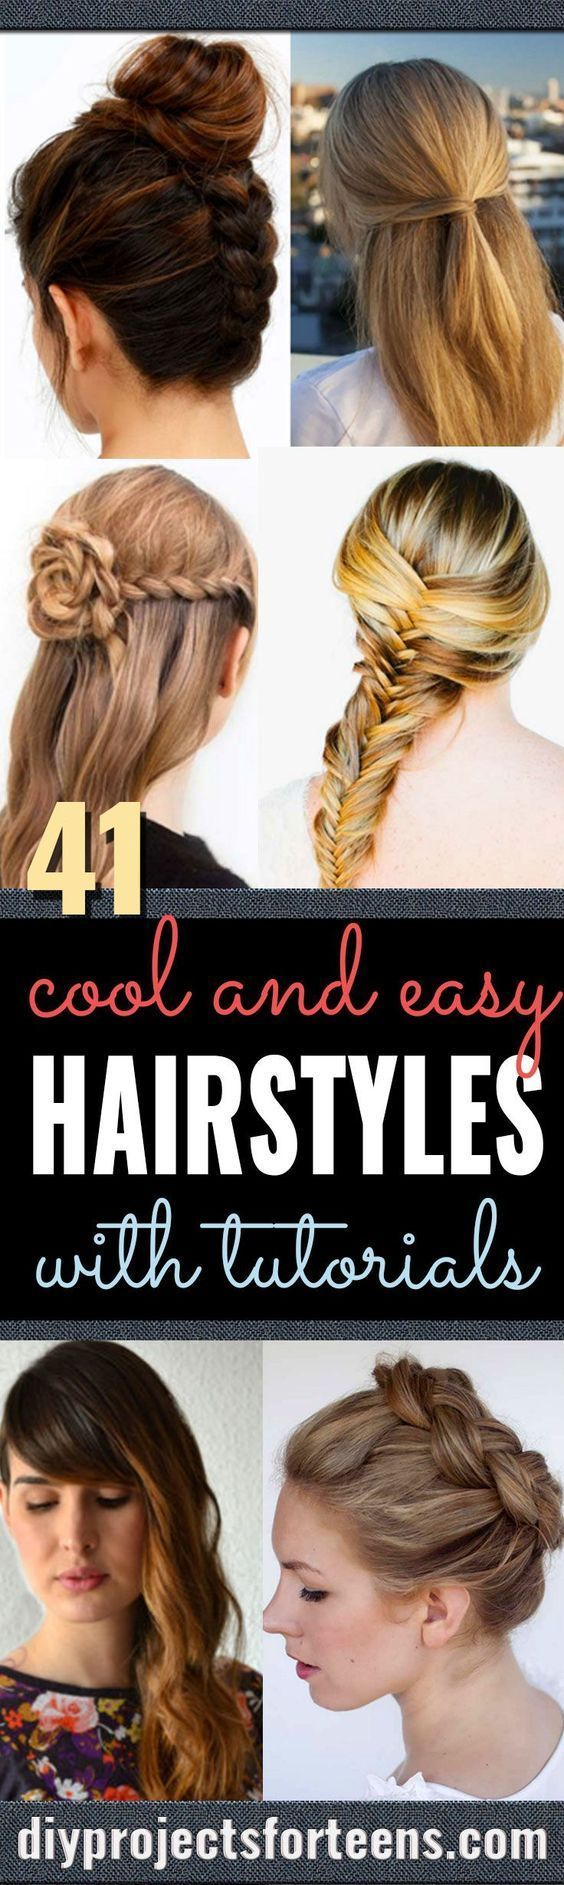 Cool and easy diy hairstyles quick and easy ideas for back to